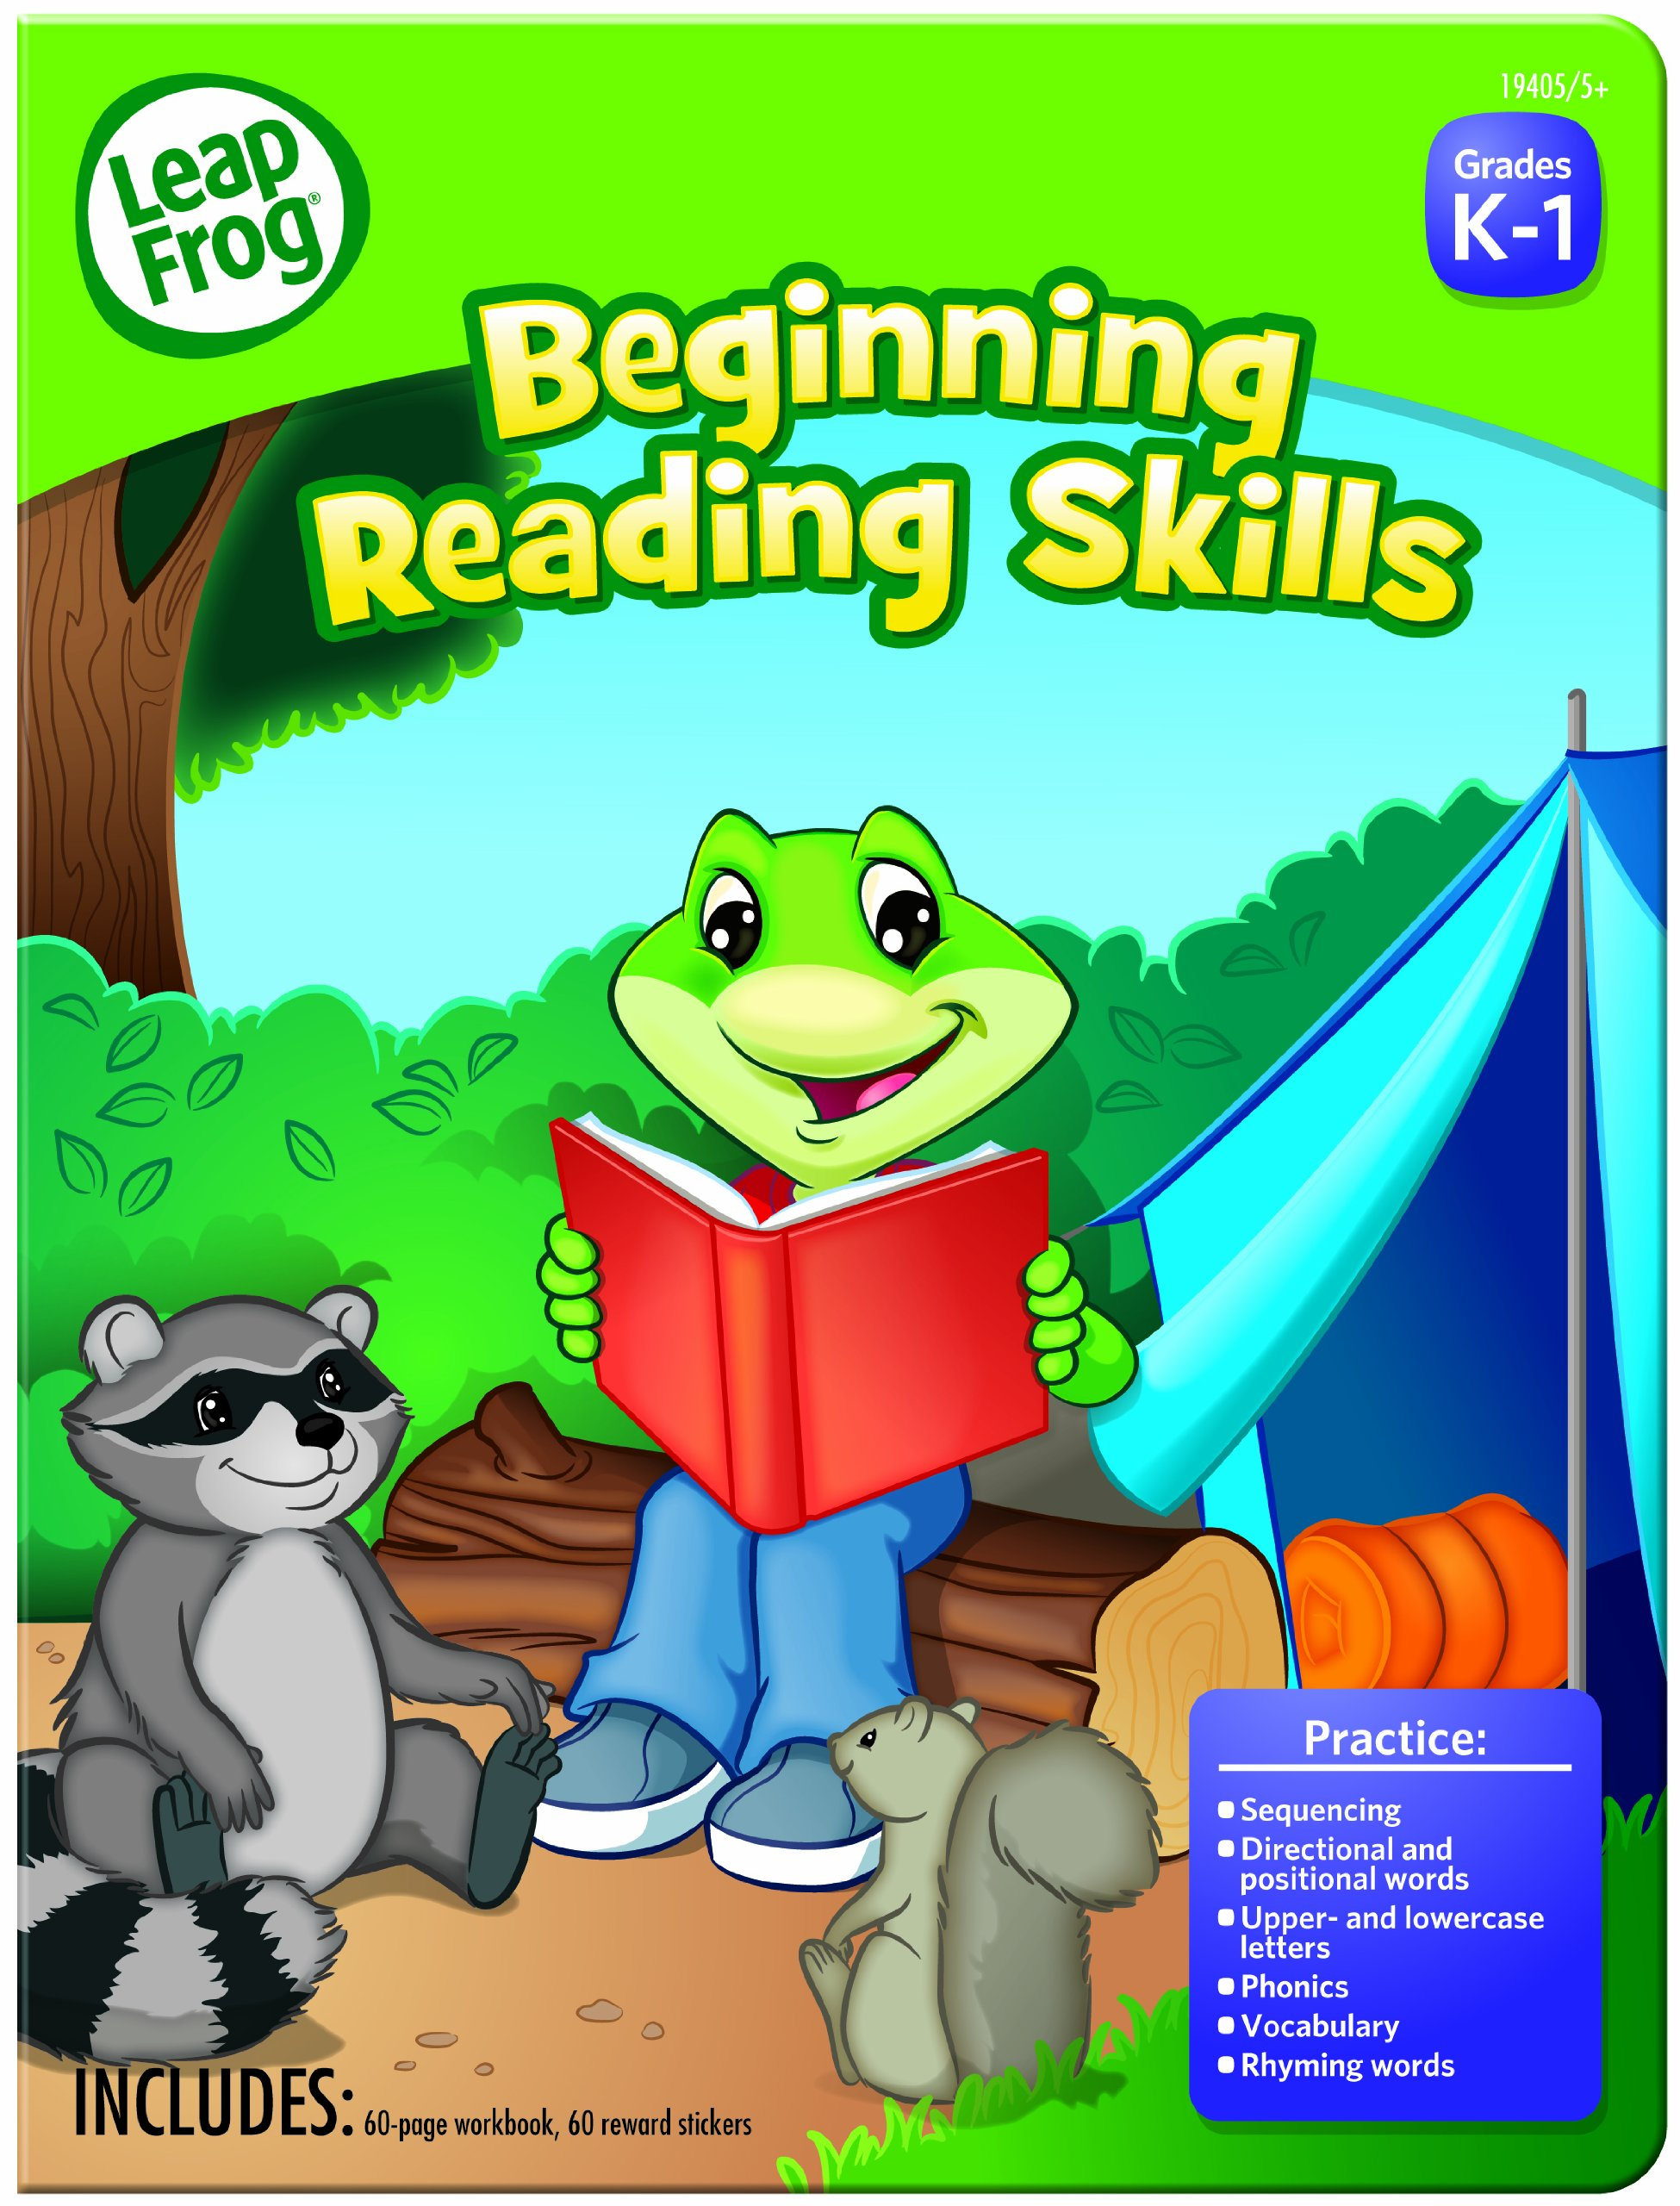 LeapFrog Beginning Reading Skills Workbook for Preschool with 60 Pages and 60 Reward Stickers (19405)